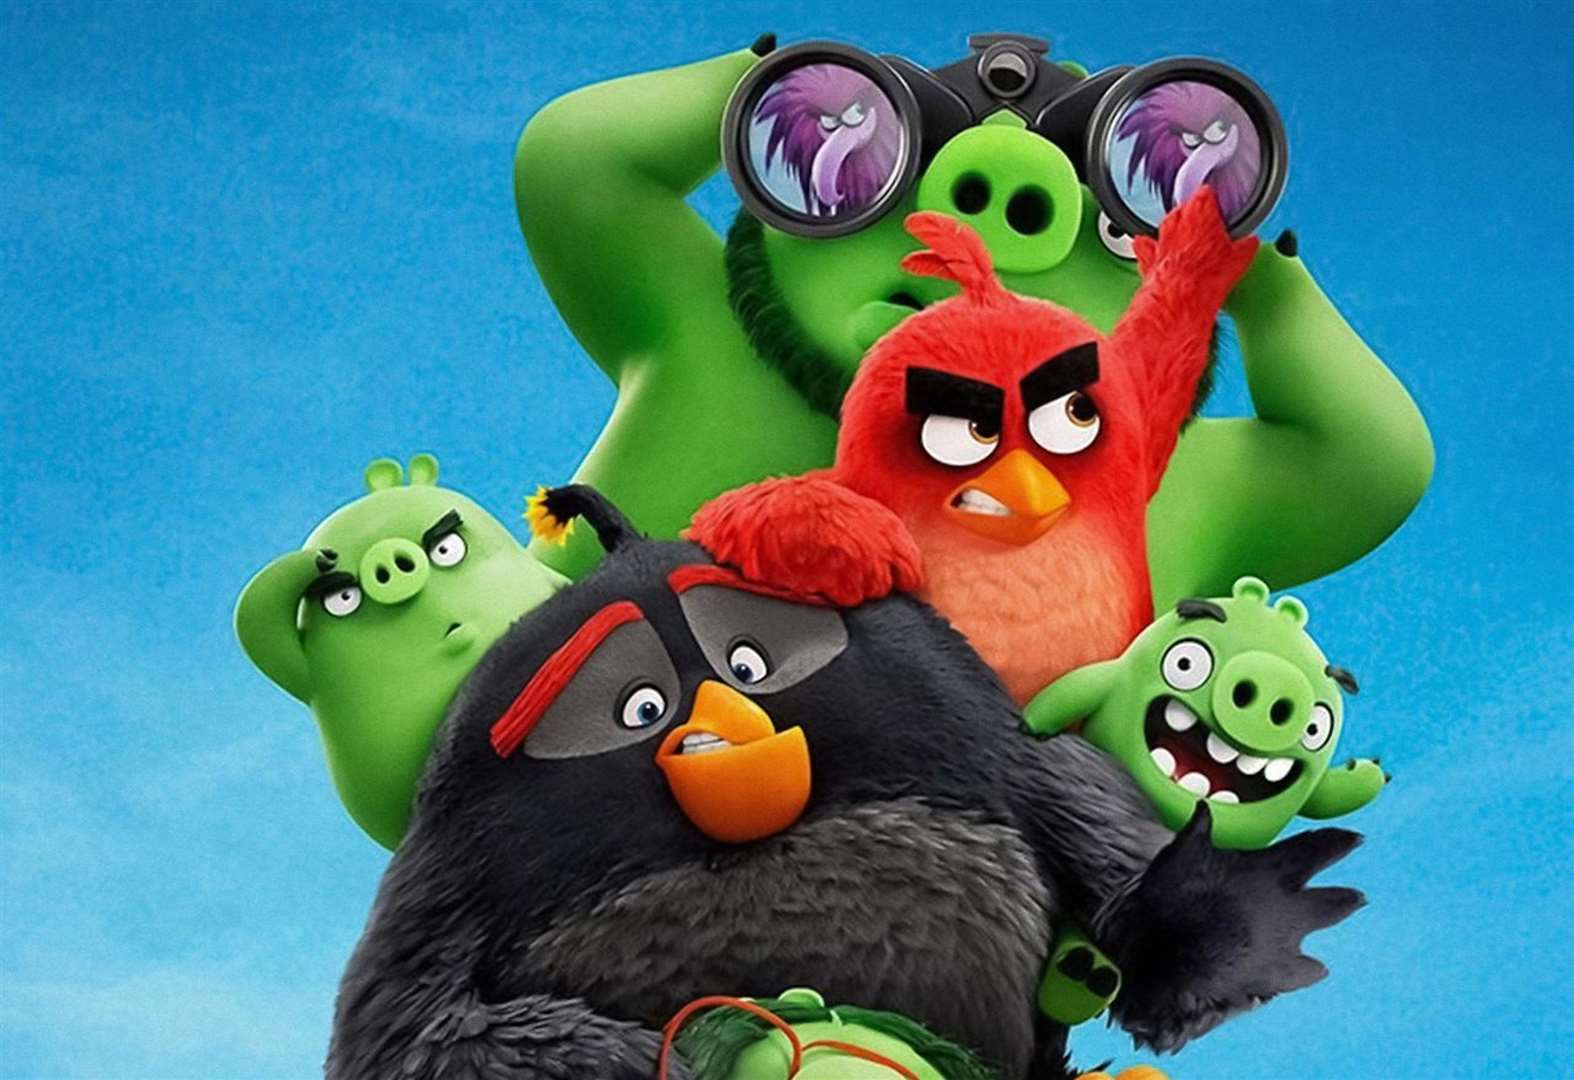 FILM REVIEW: The Angry Birds Movie 2 (12A)